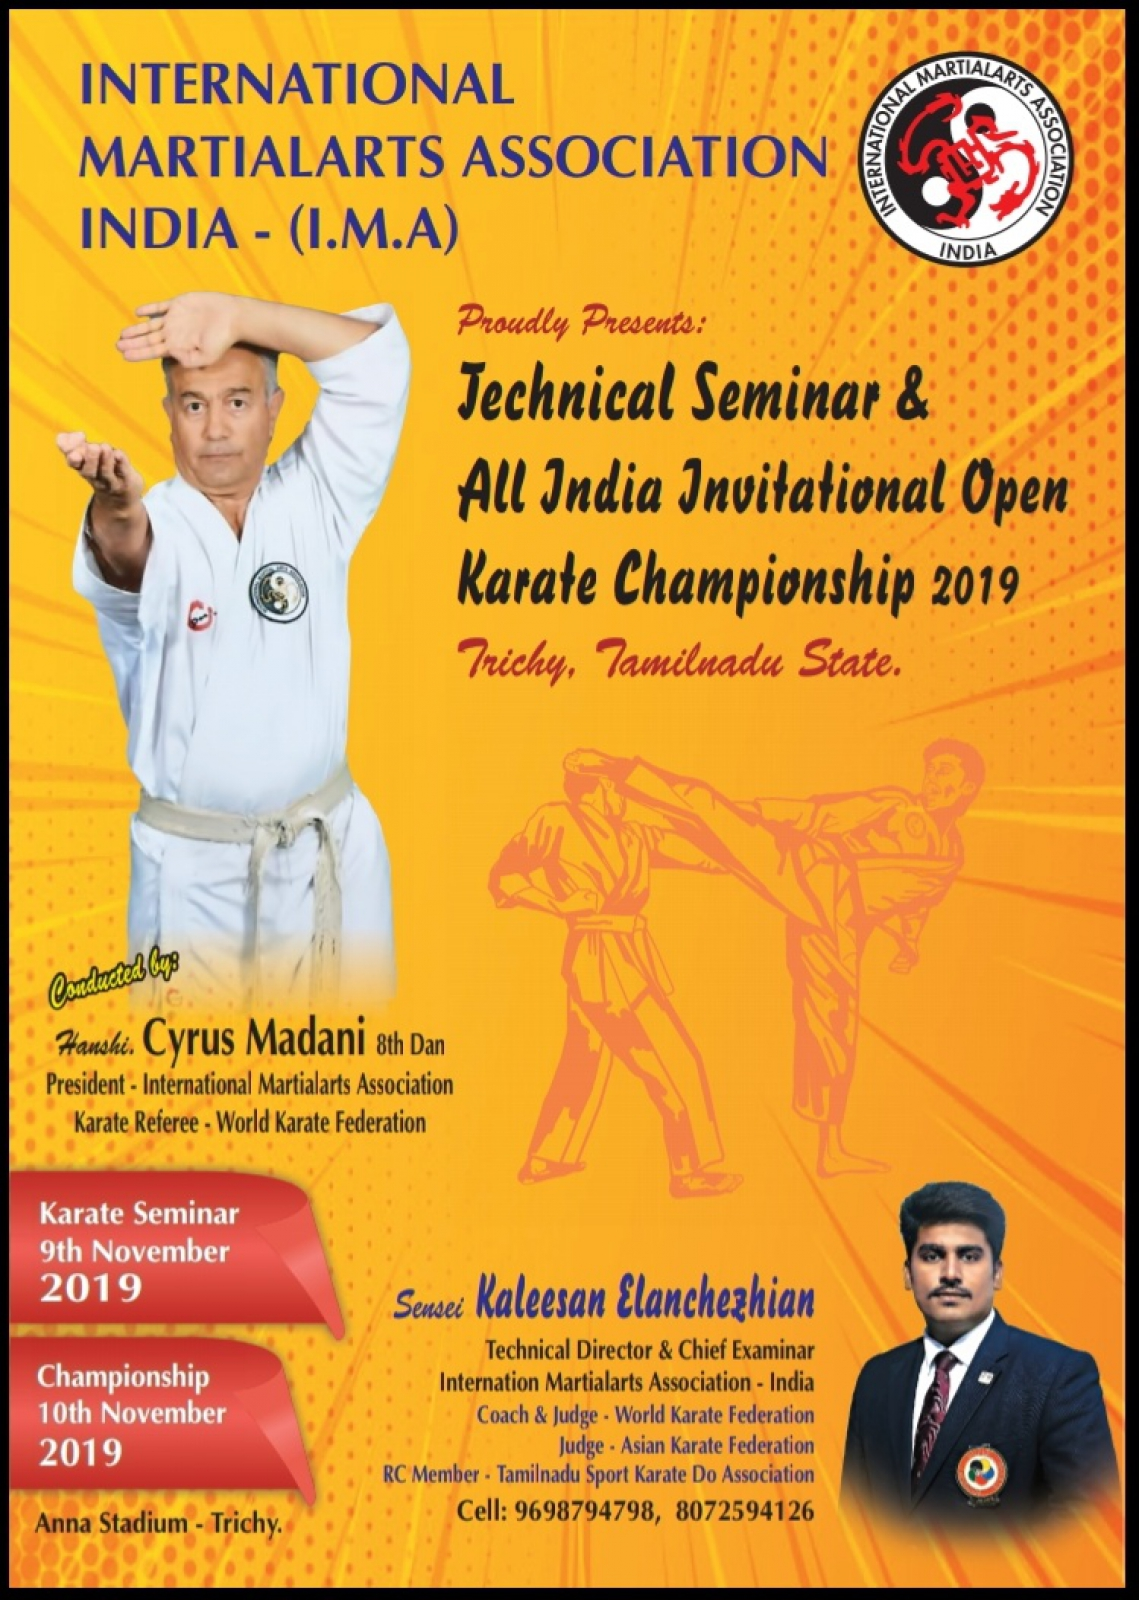 SET Online Karate: I M A Awards All India Invitational Open